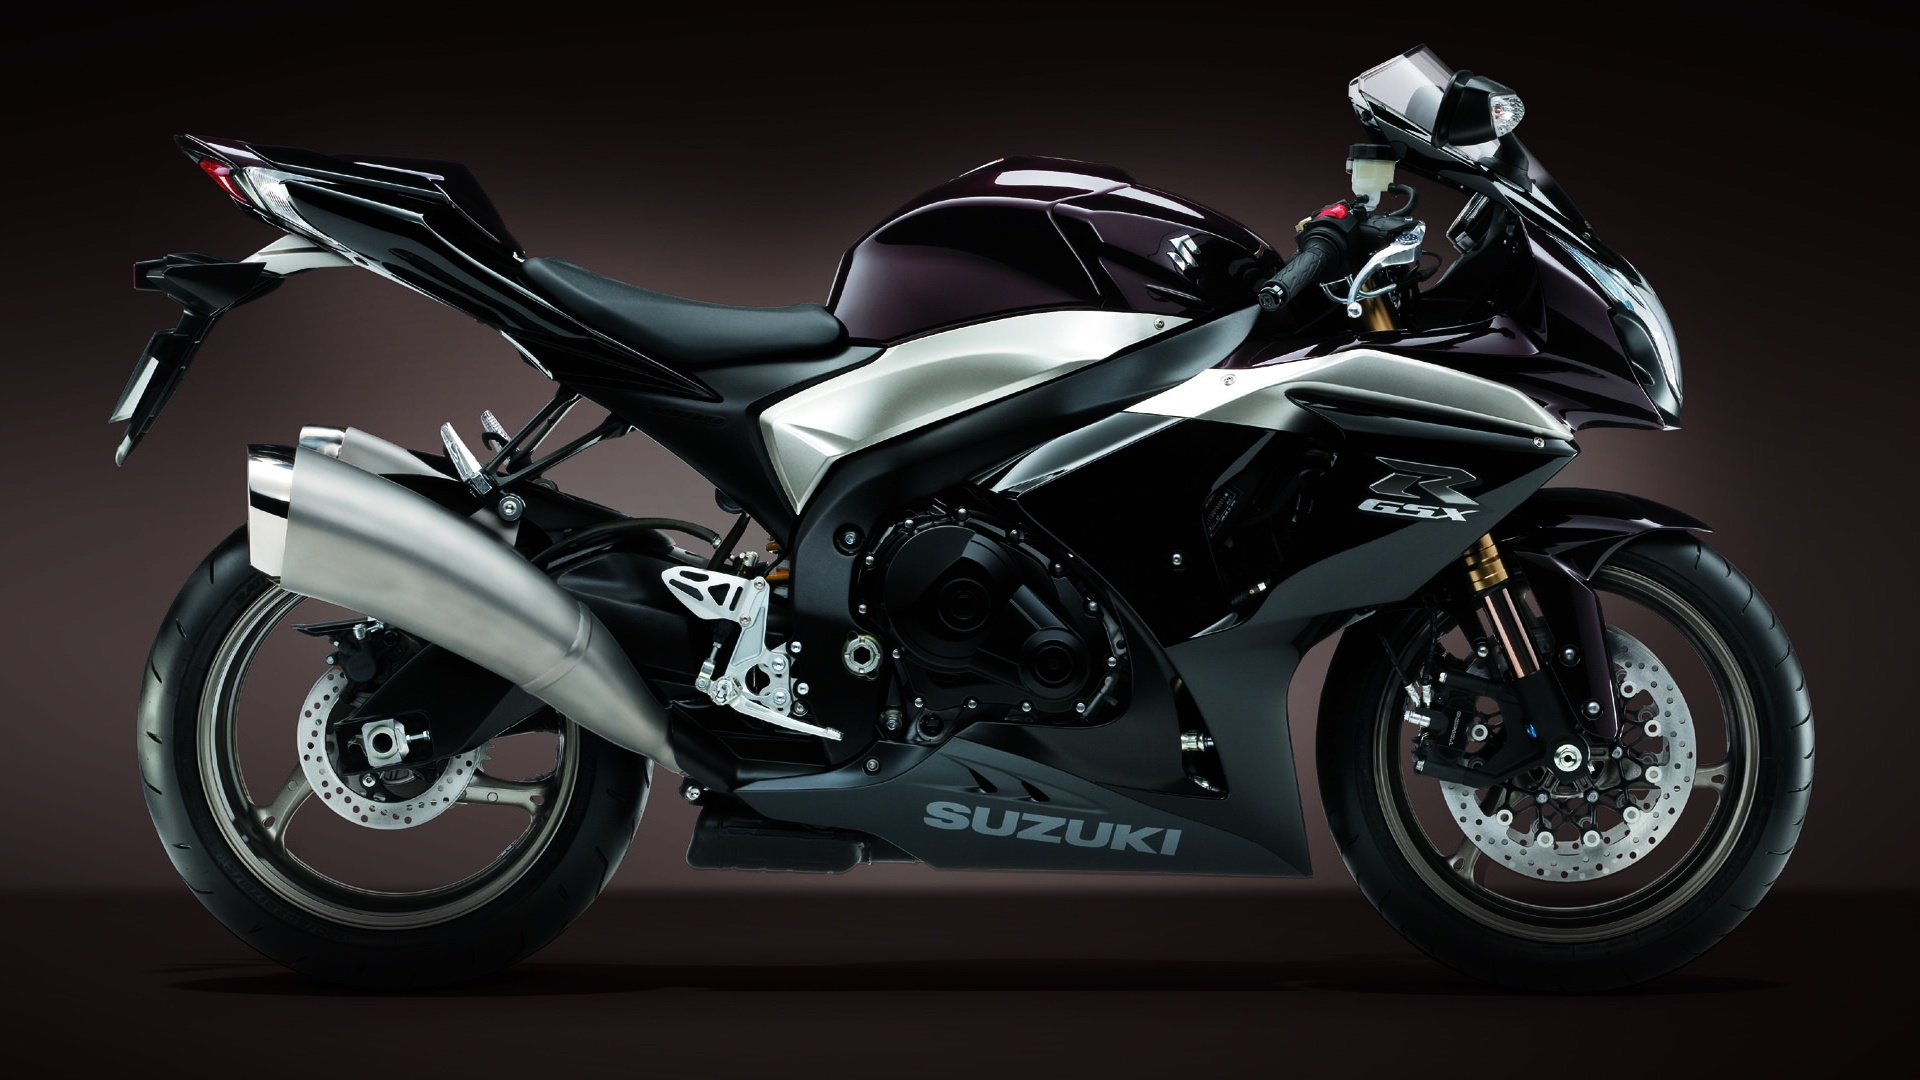 Cars And Bikes Wallpapers For Windows K Wallpapers - Sports cars and bikes